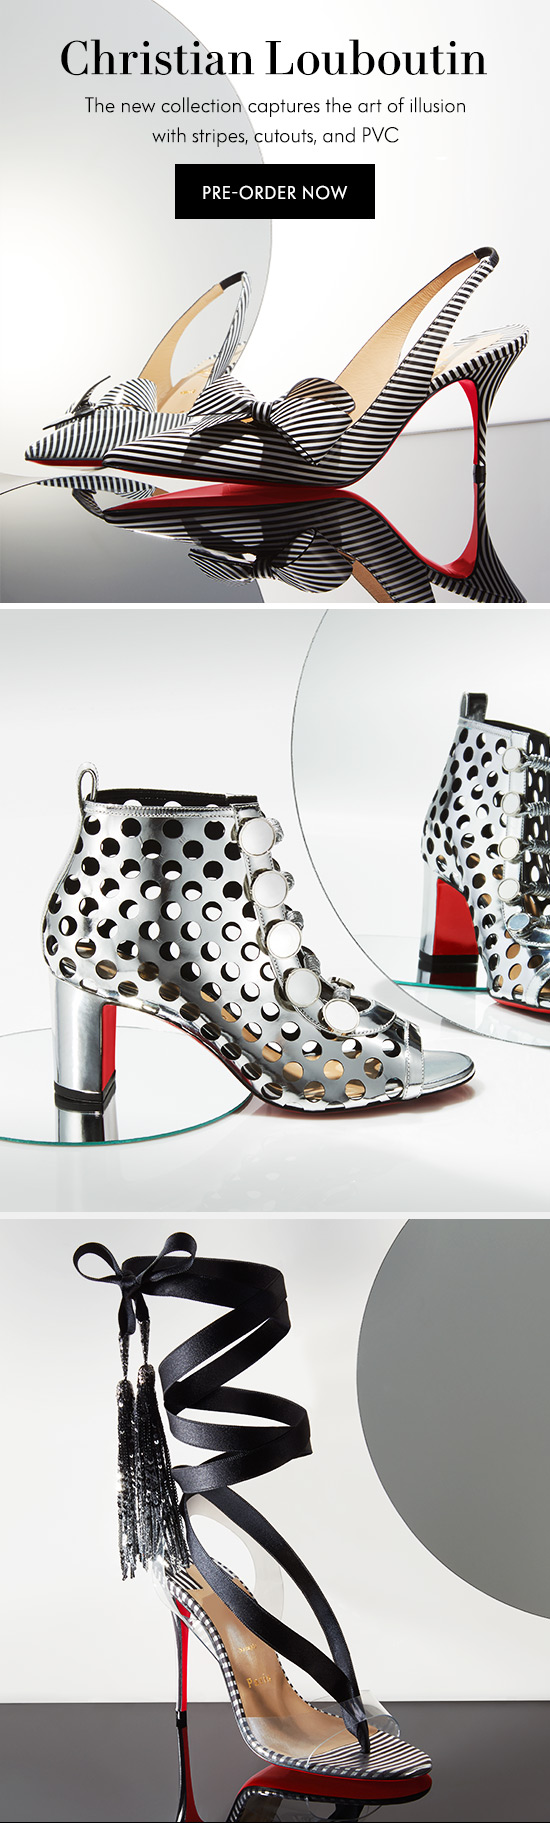 Pre-Order Christian Louboutin Shoes